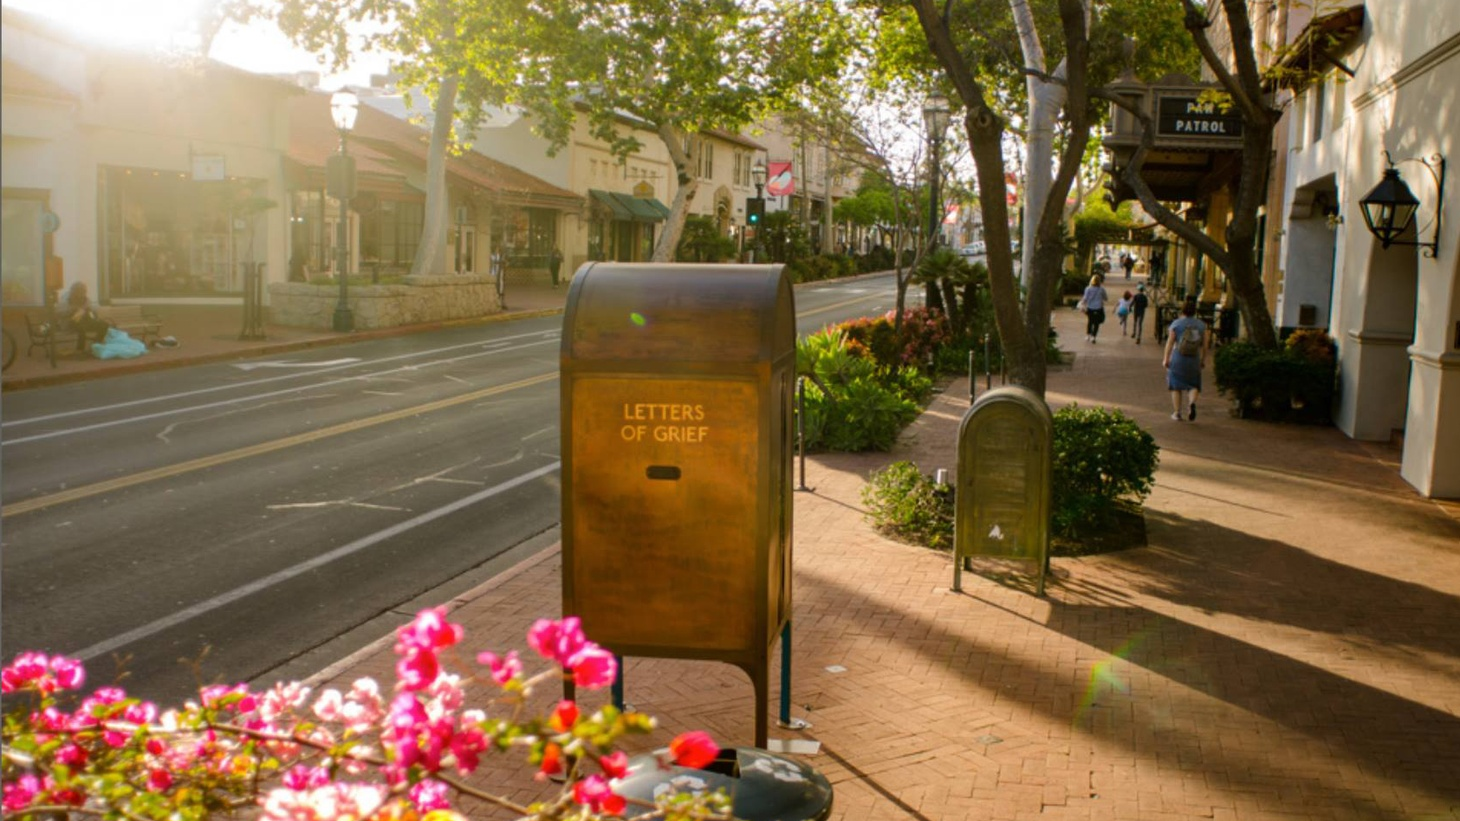 On the corner of State and Anapamu Street in downtown Santa Barbara sits an eight-foot-tall mailbox. You don't need a stamp or an address to drop a letter inside; it's an interactive art installation.